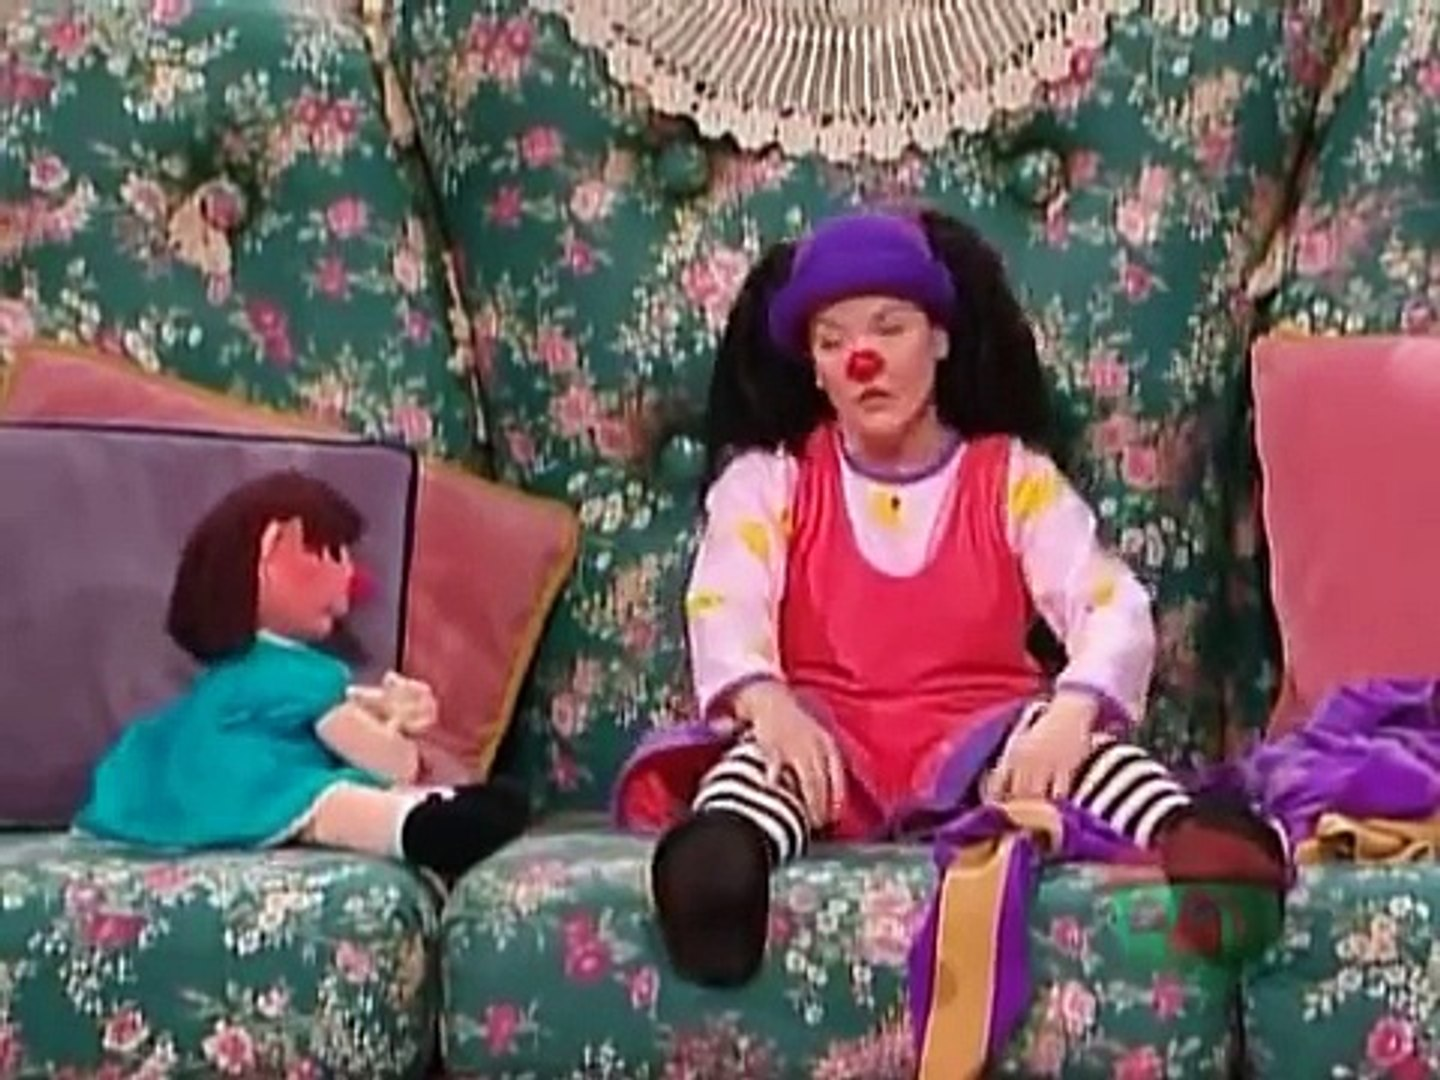 Big Couch Clown The Big Comfy Couch The Clown Promise